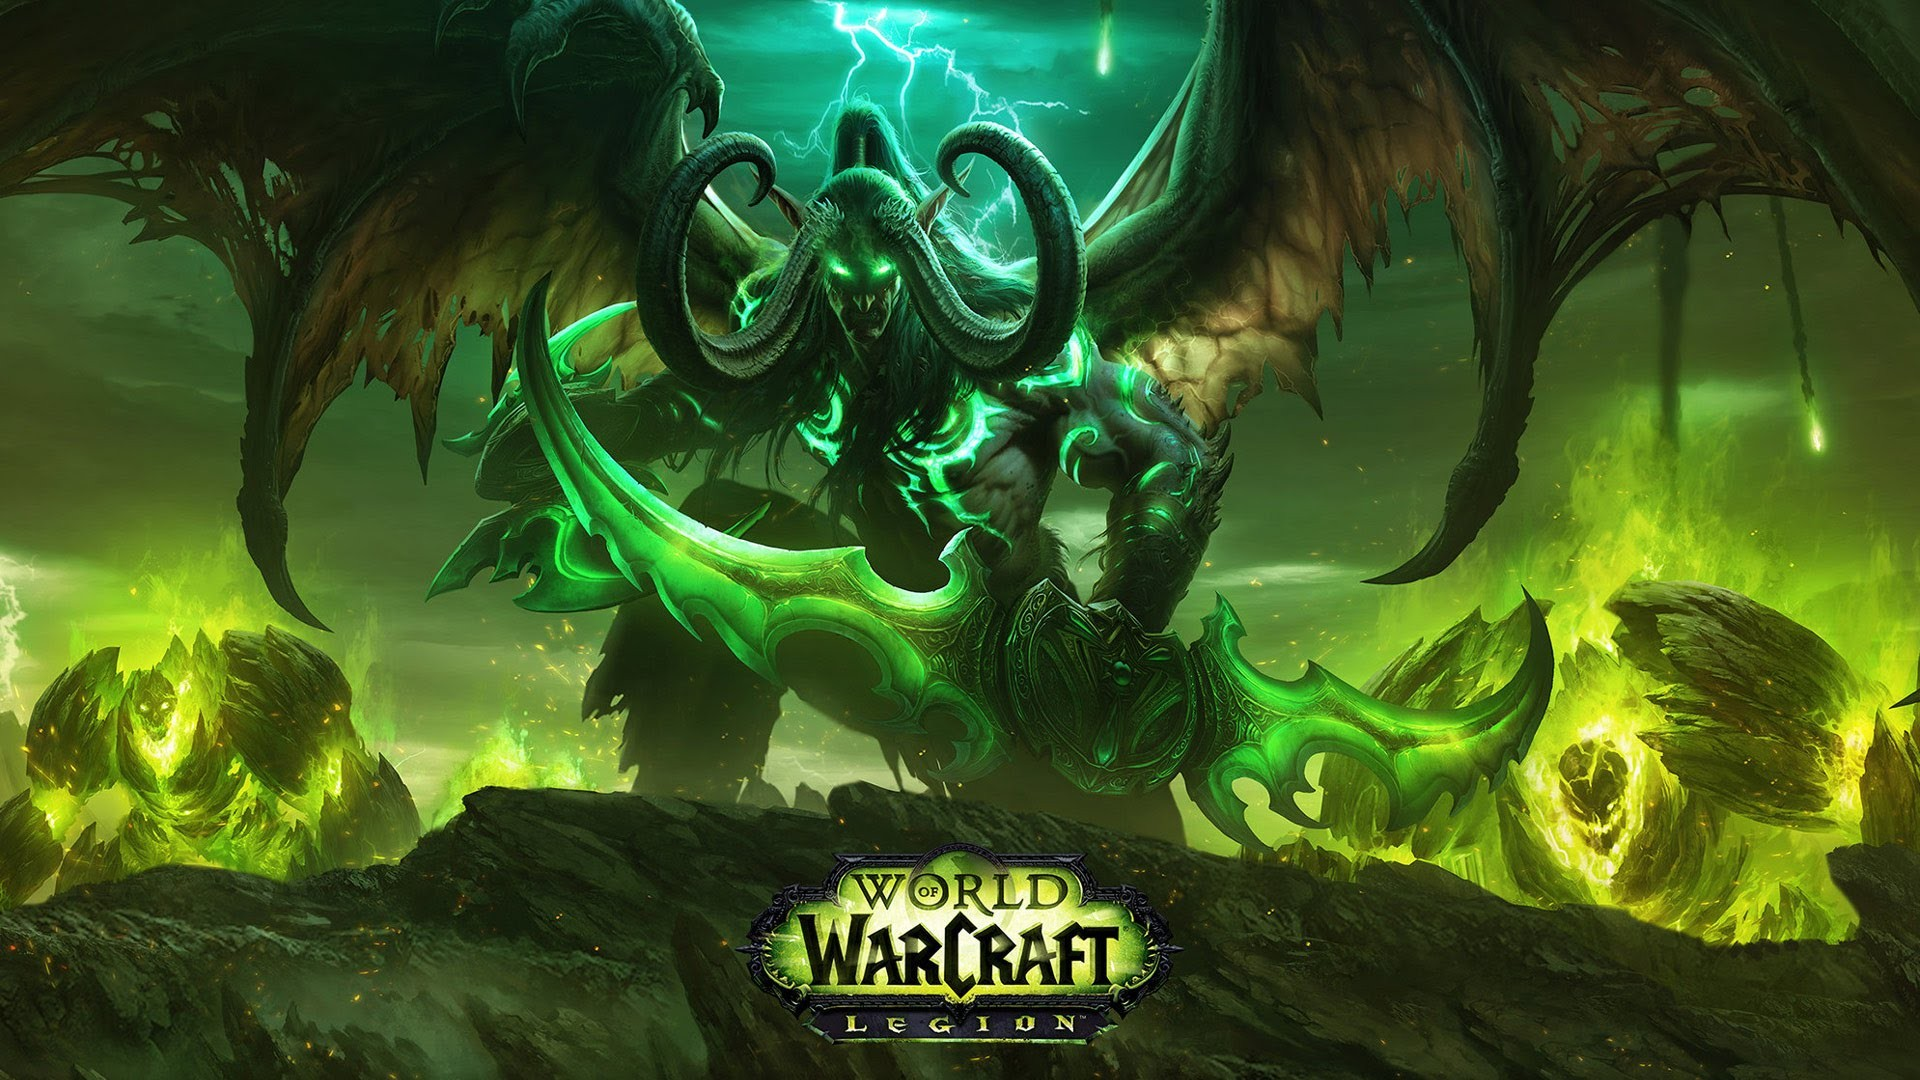 background - HW nároky pro World of Warcraft: Legion